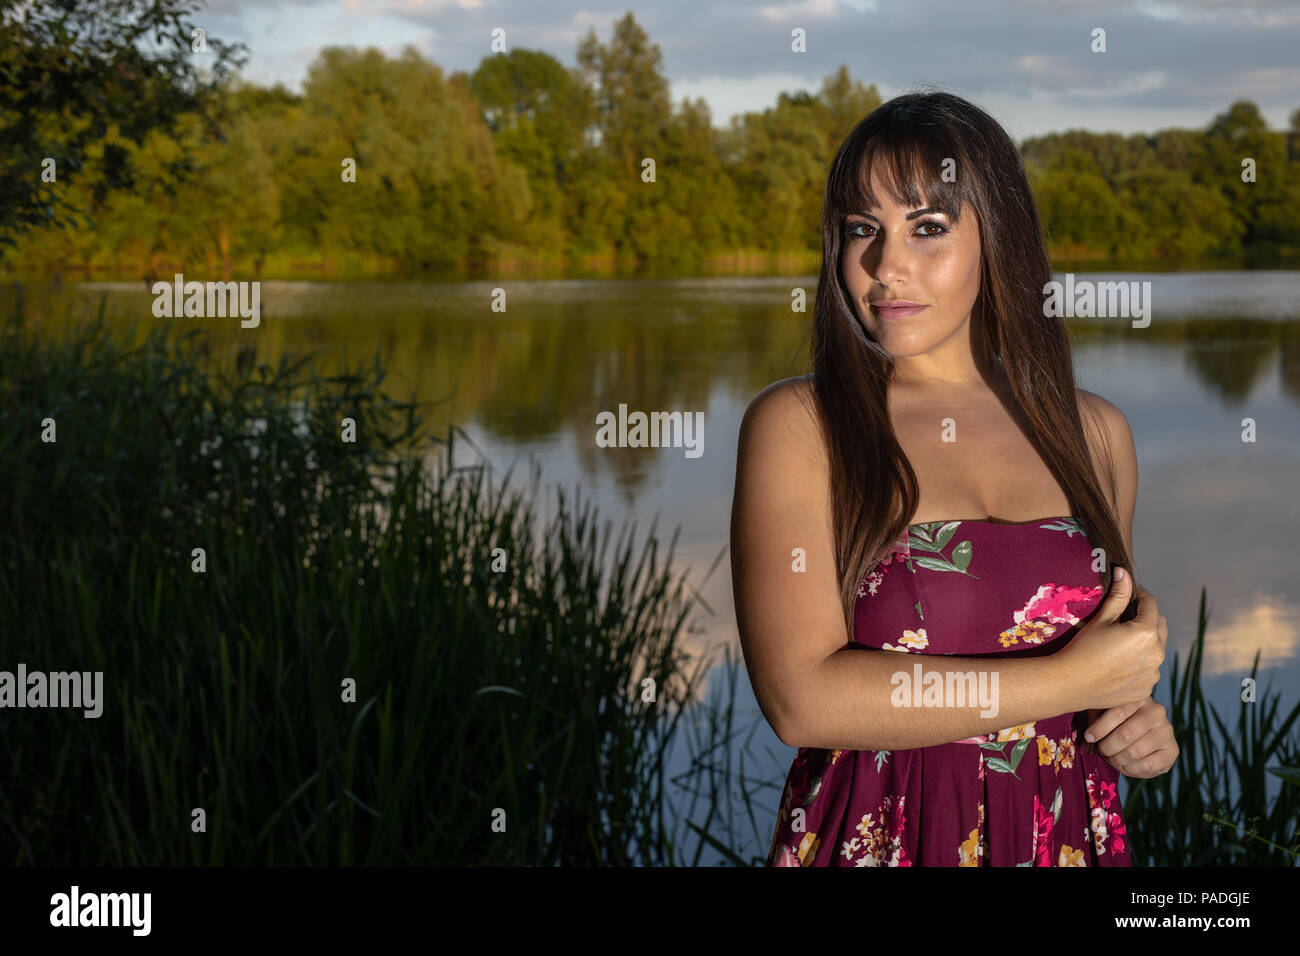 Spanish American female standing at the edge of a lake in Cambridgeshire.  Wearing a plum coloured floral dress during a summer sunset. - Stock Image